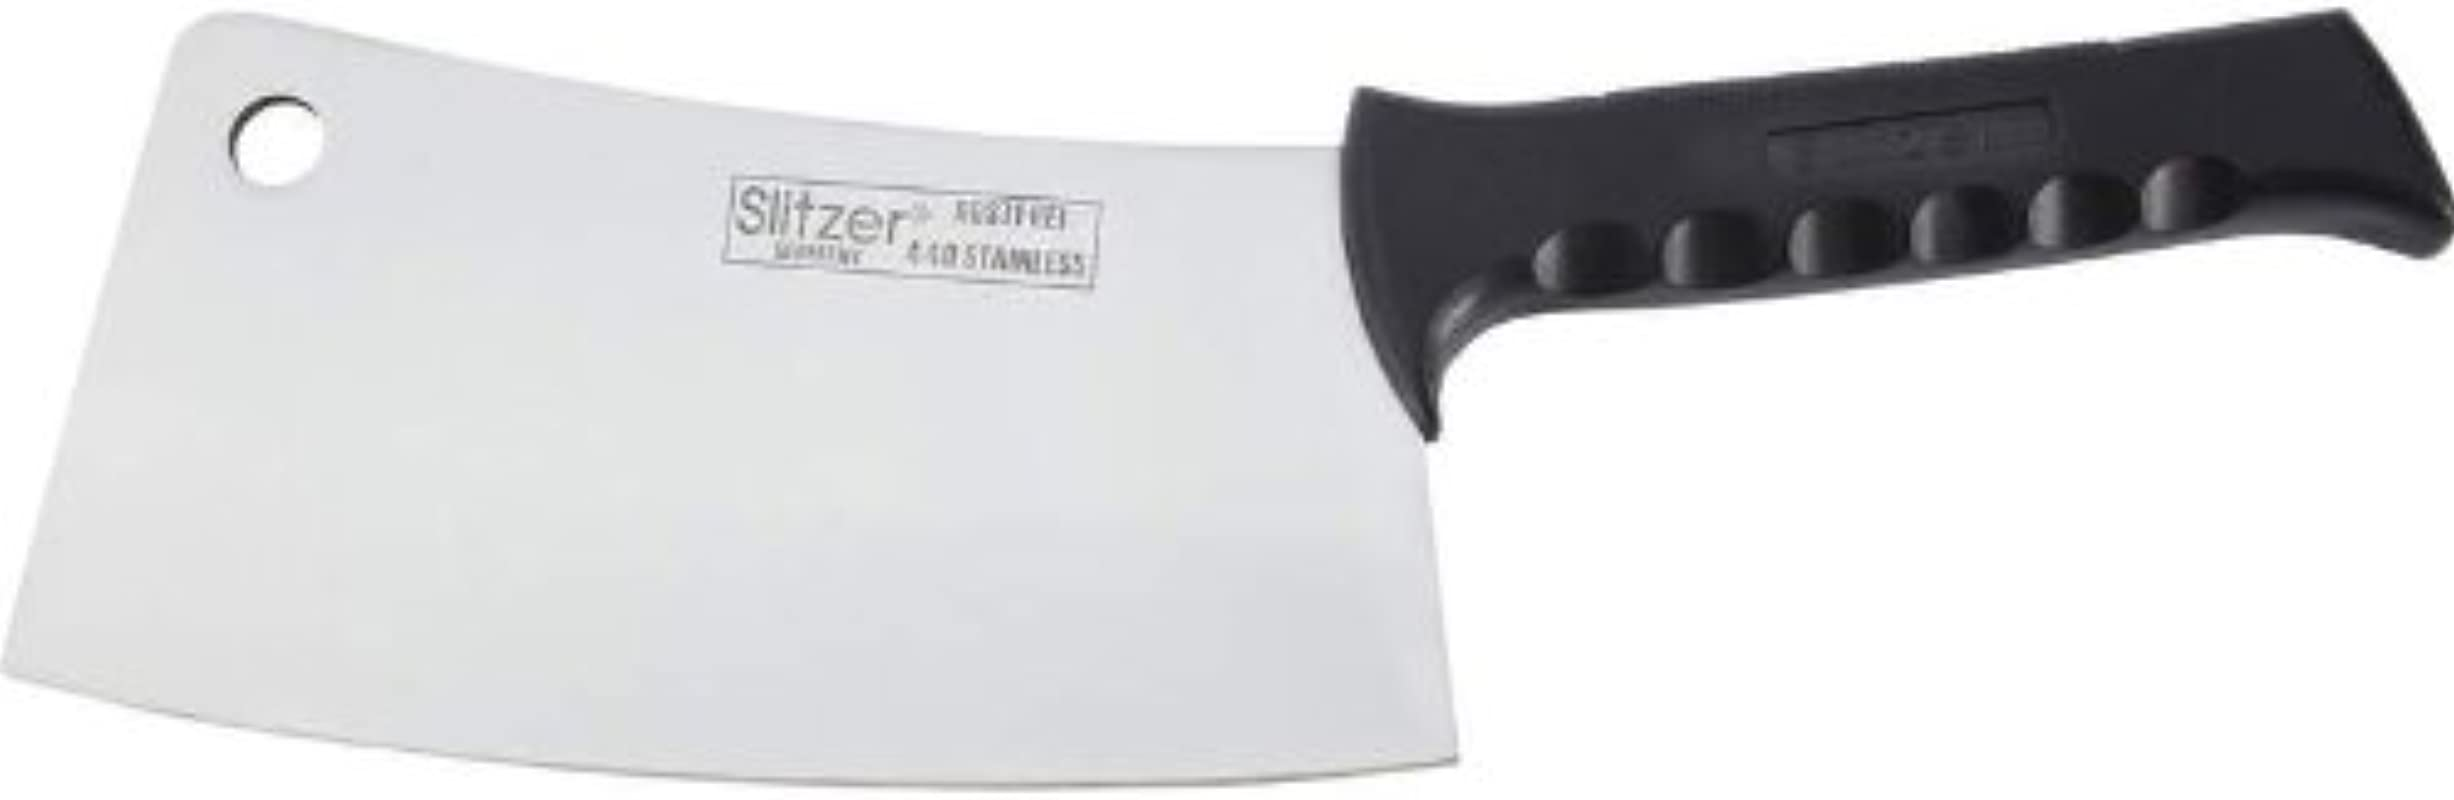 Slitzer CTCLVR Professional Chef S Heavy Duty Cleaver